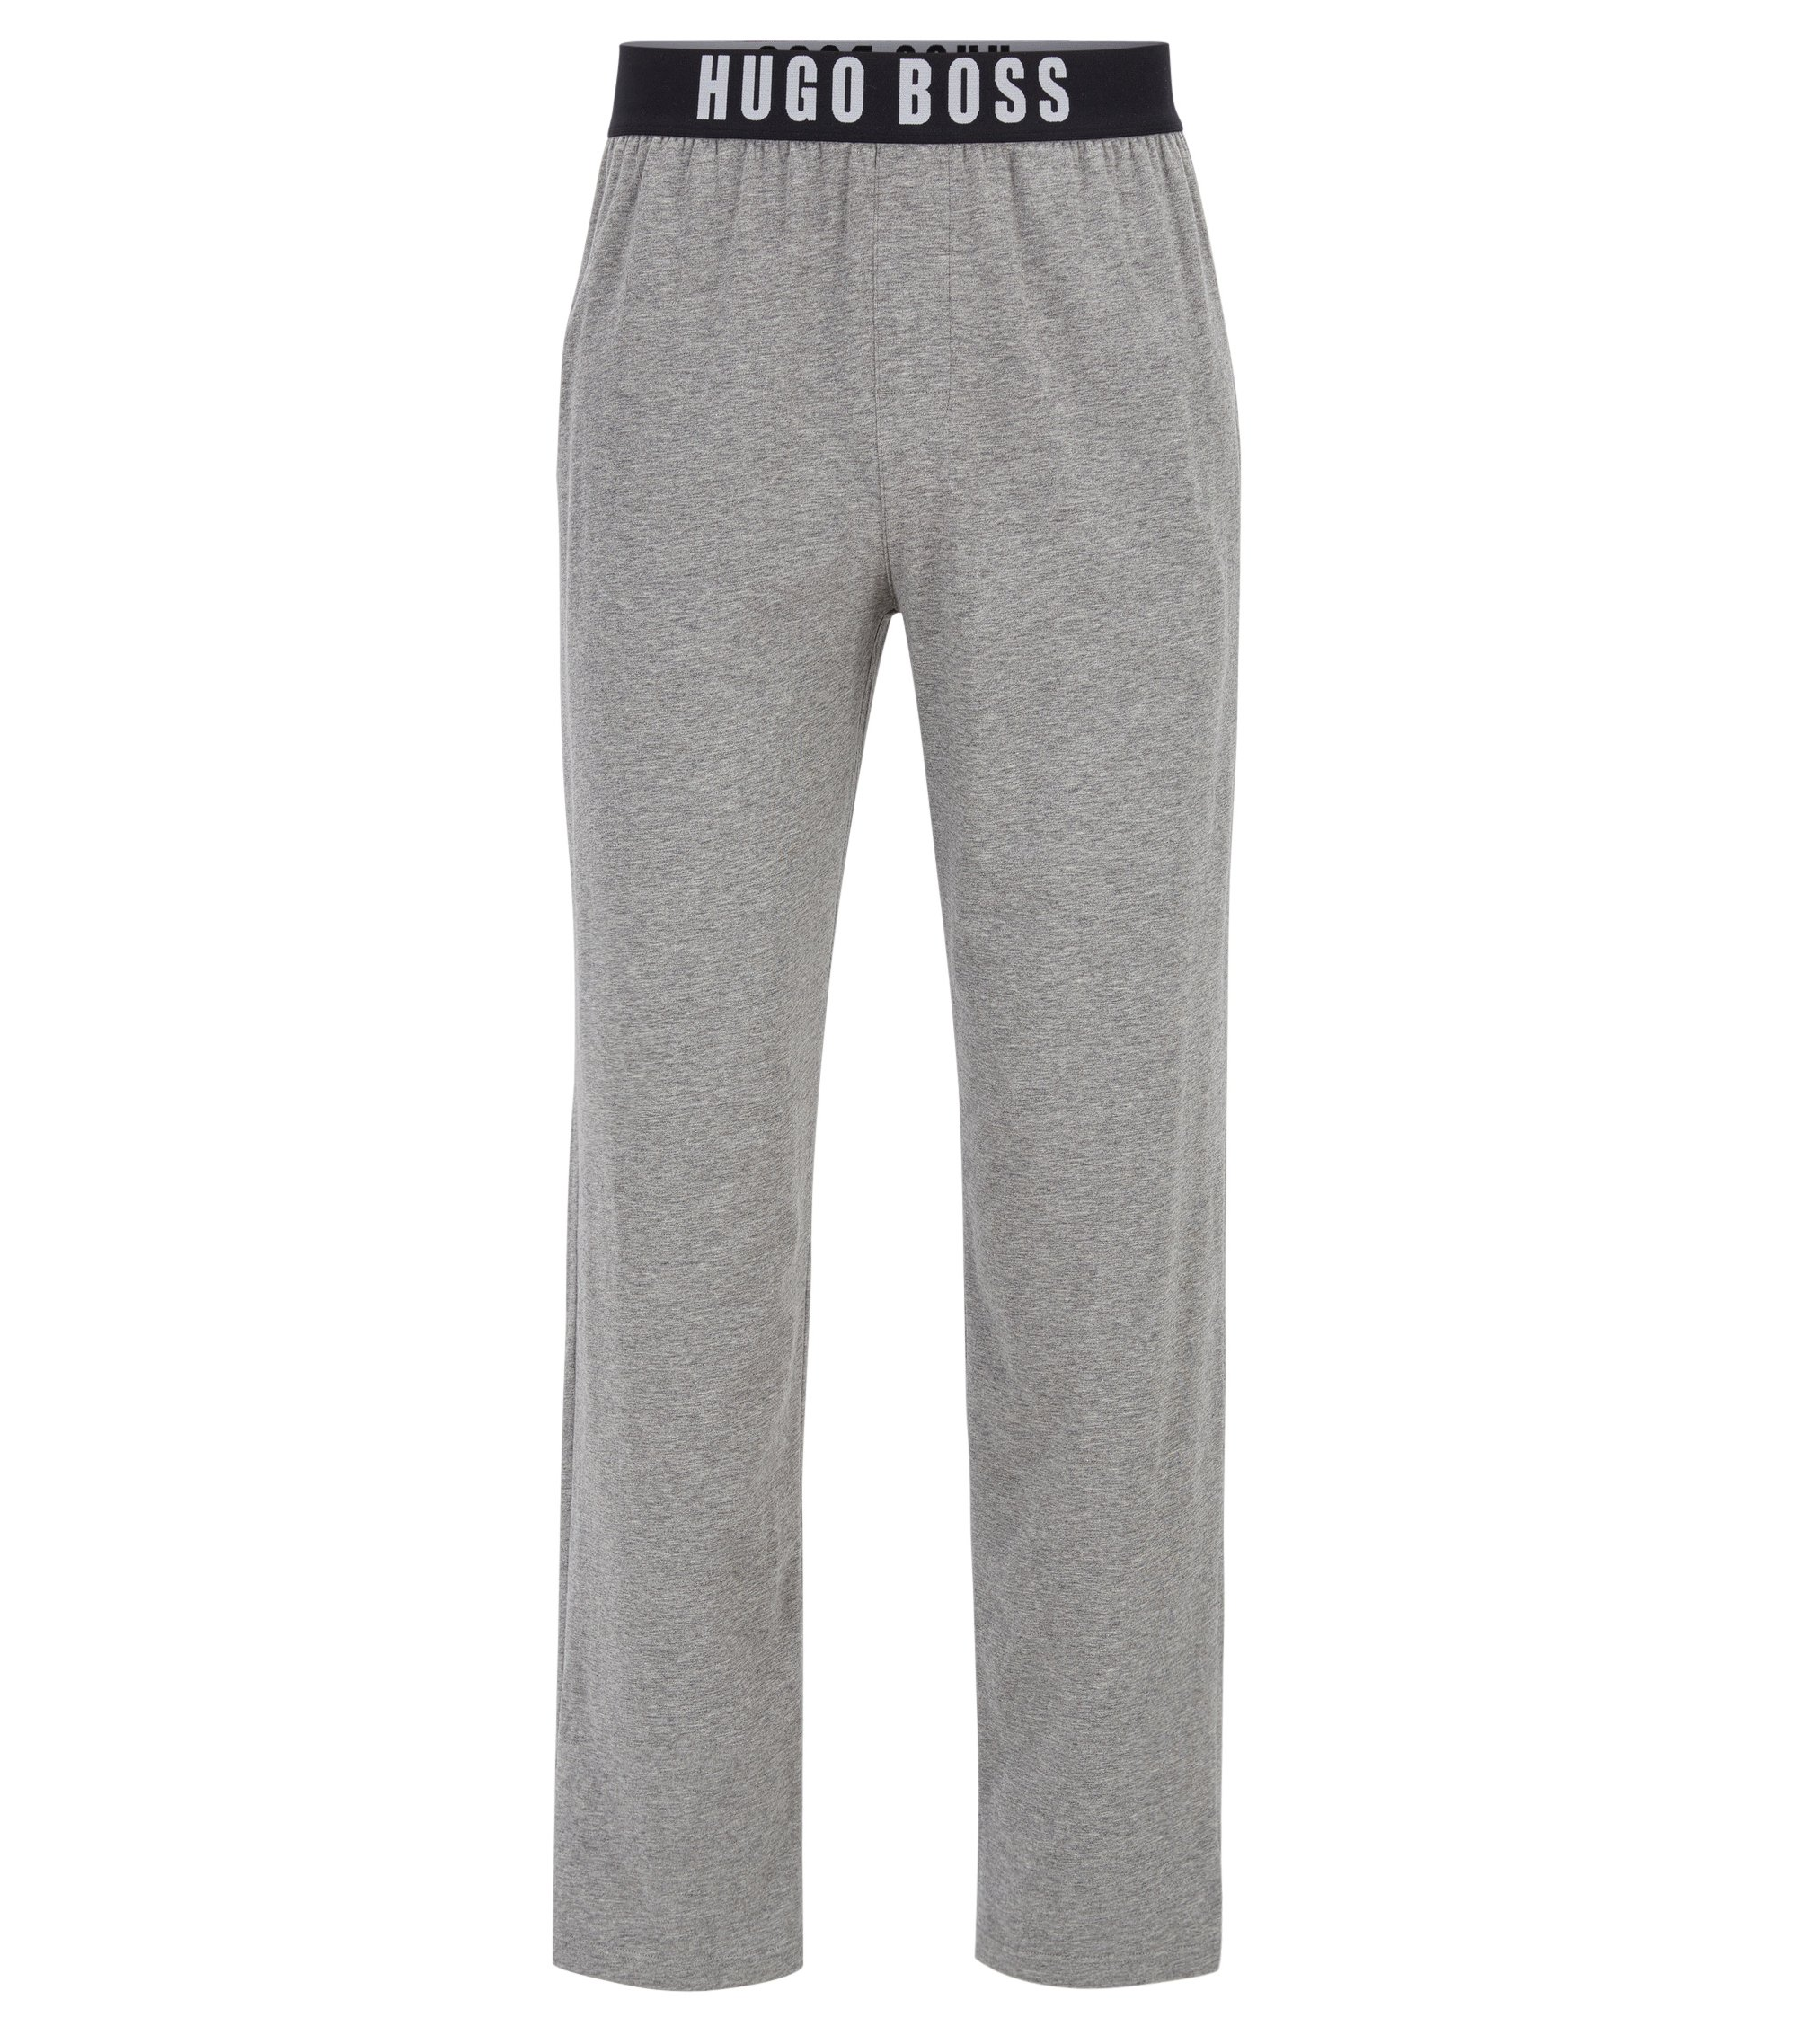 Pyjama trousers in stretch cotton jersey, Grey